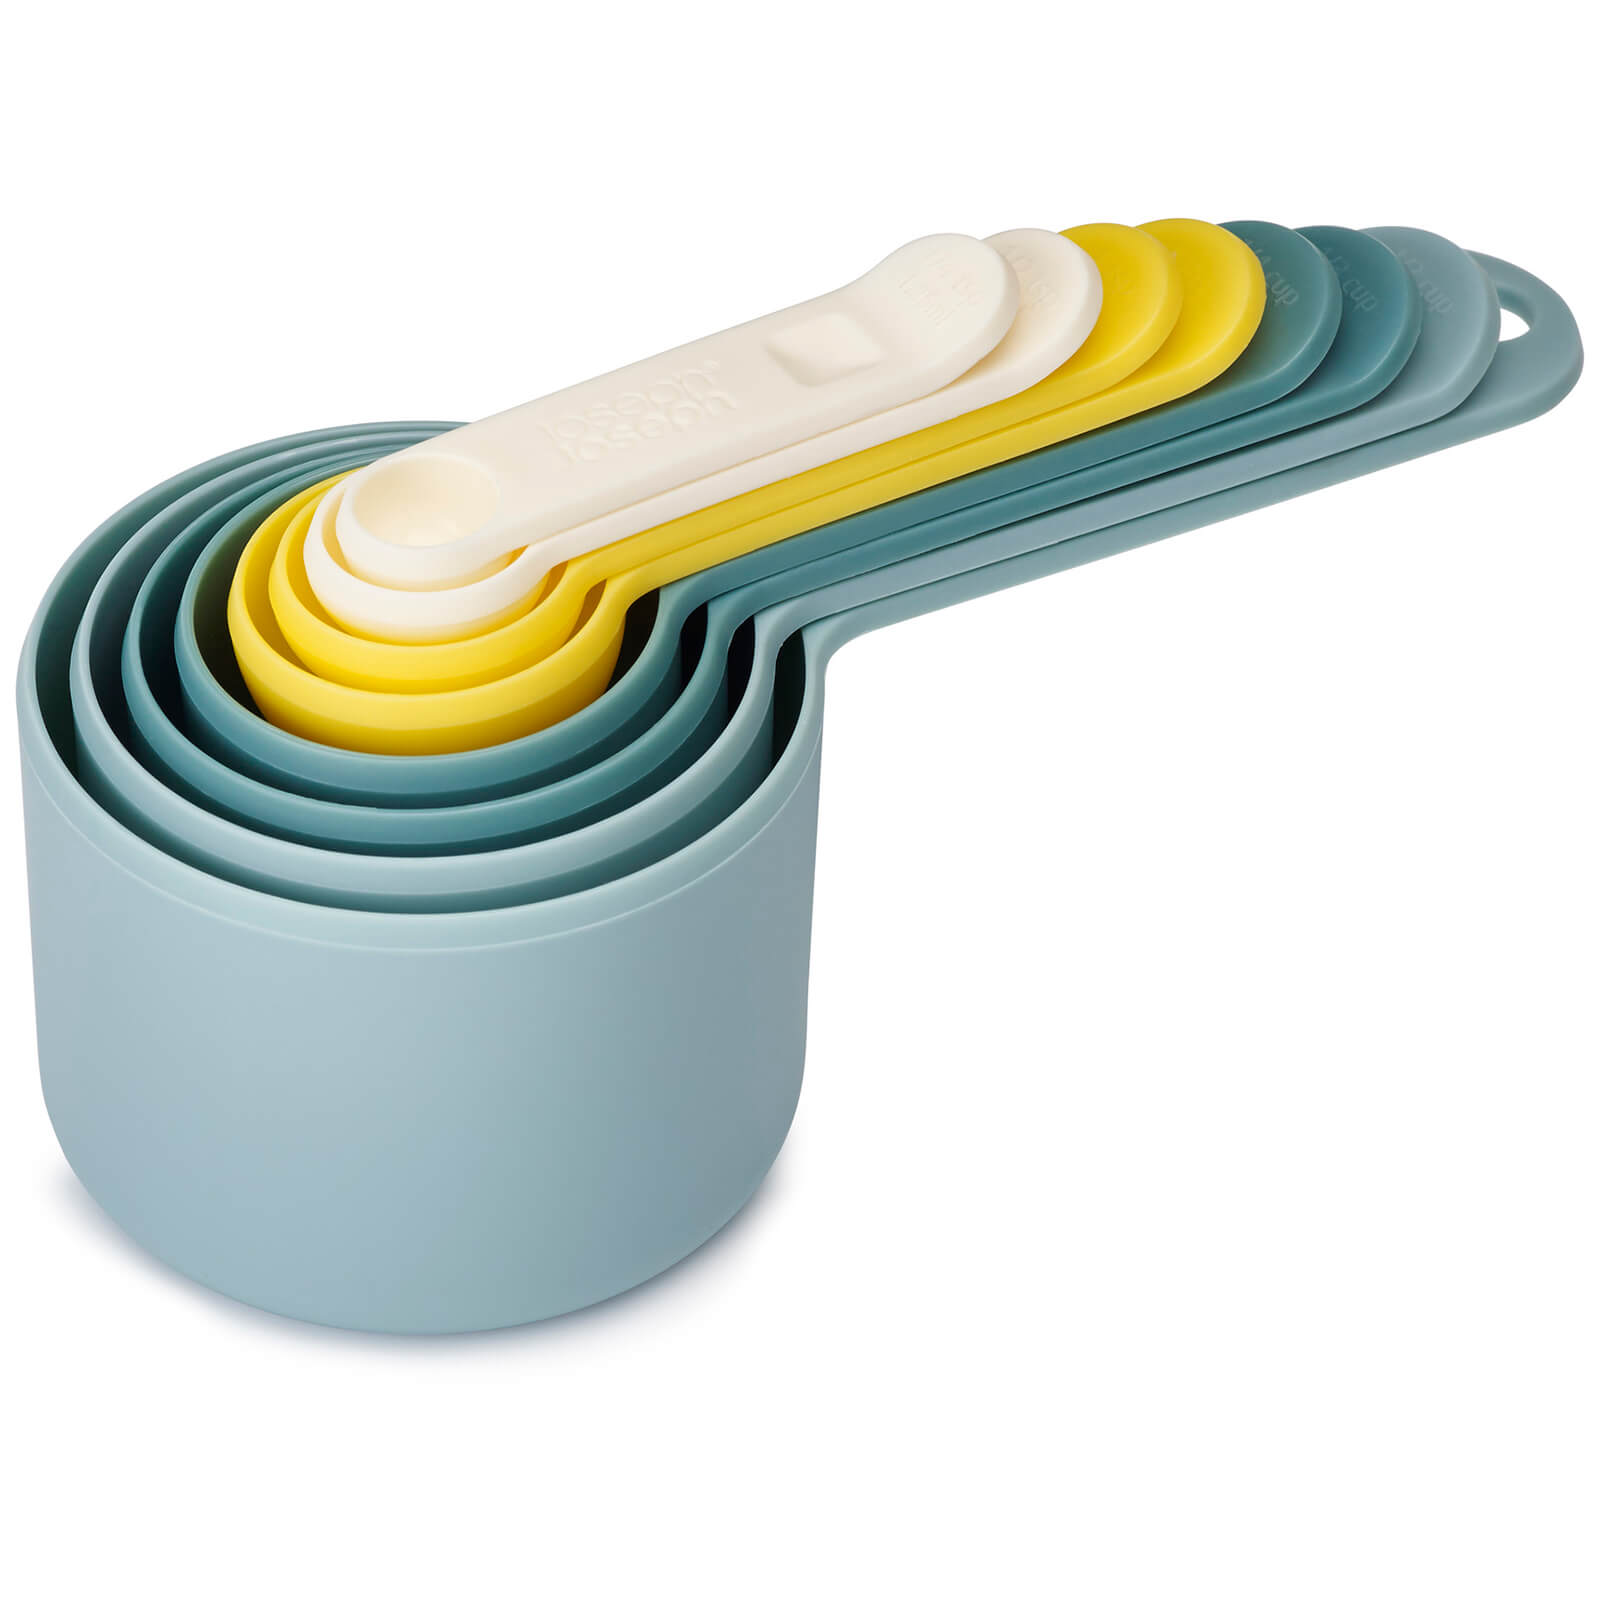 Joseph Joseph Nest Measure Cup Set - Opal